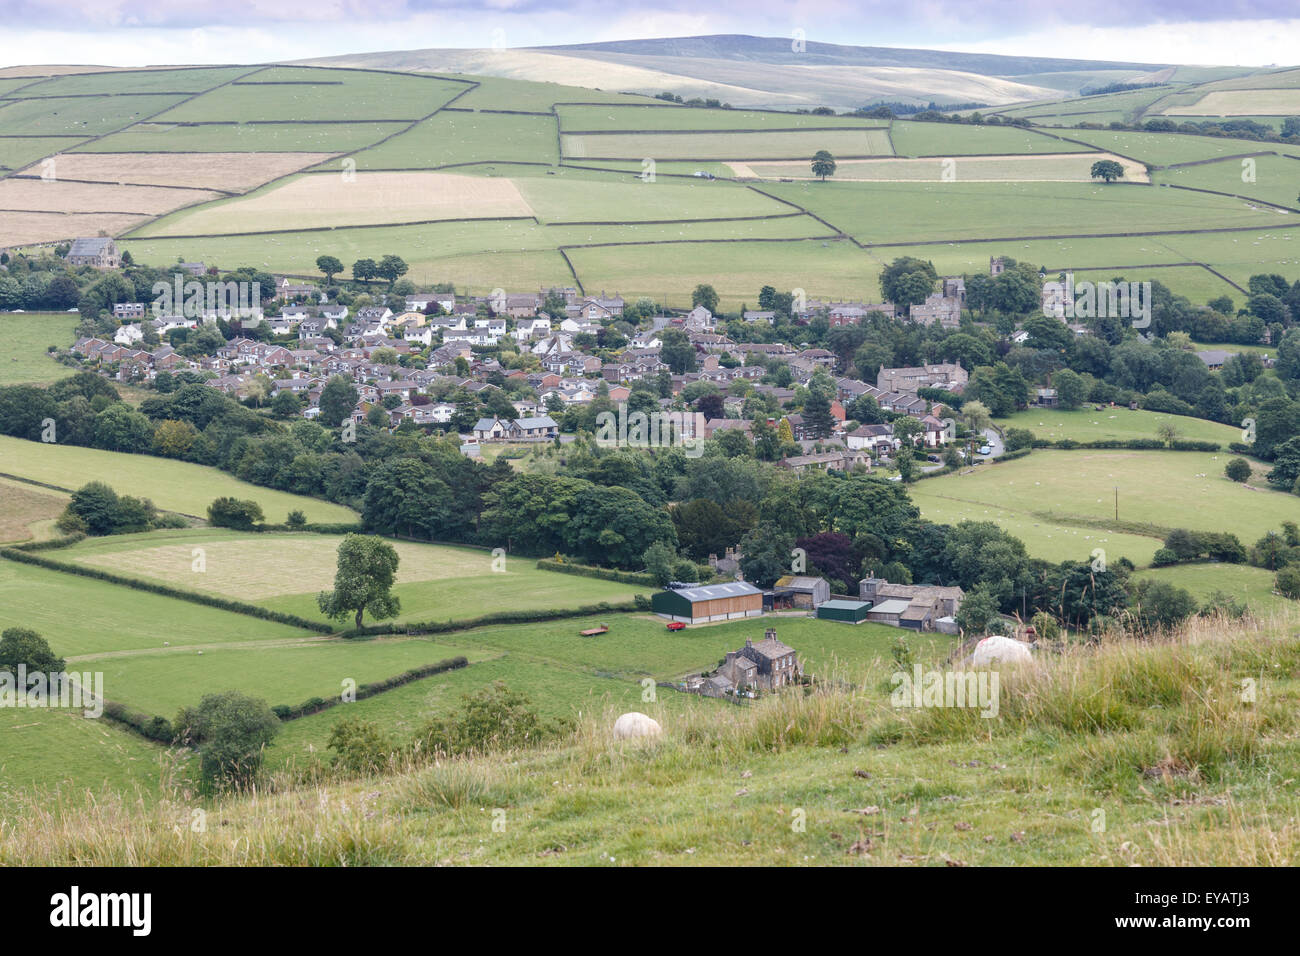 Rainow village and the Peak District moorlands above - Stock Image